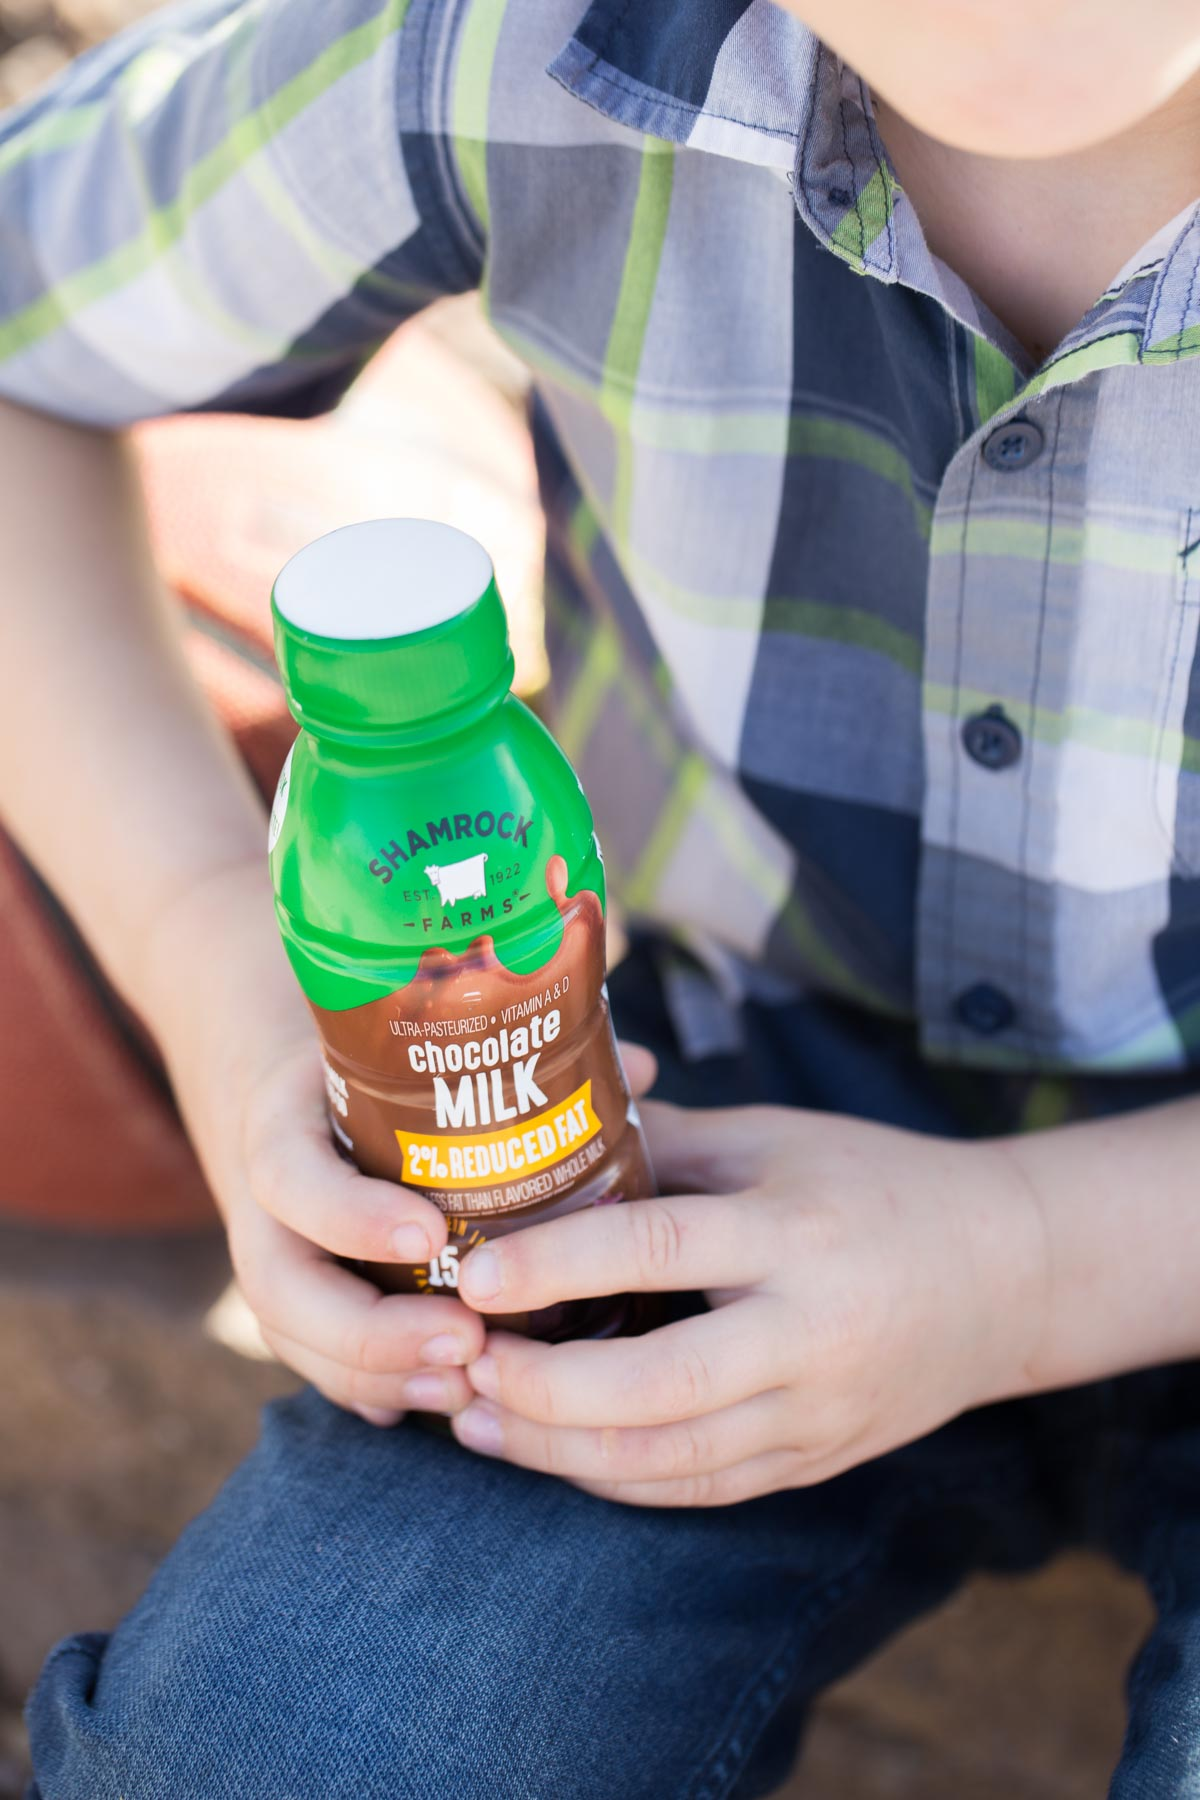 Close up of Shamrock Farms chocolate milk in his hand.